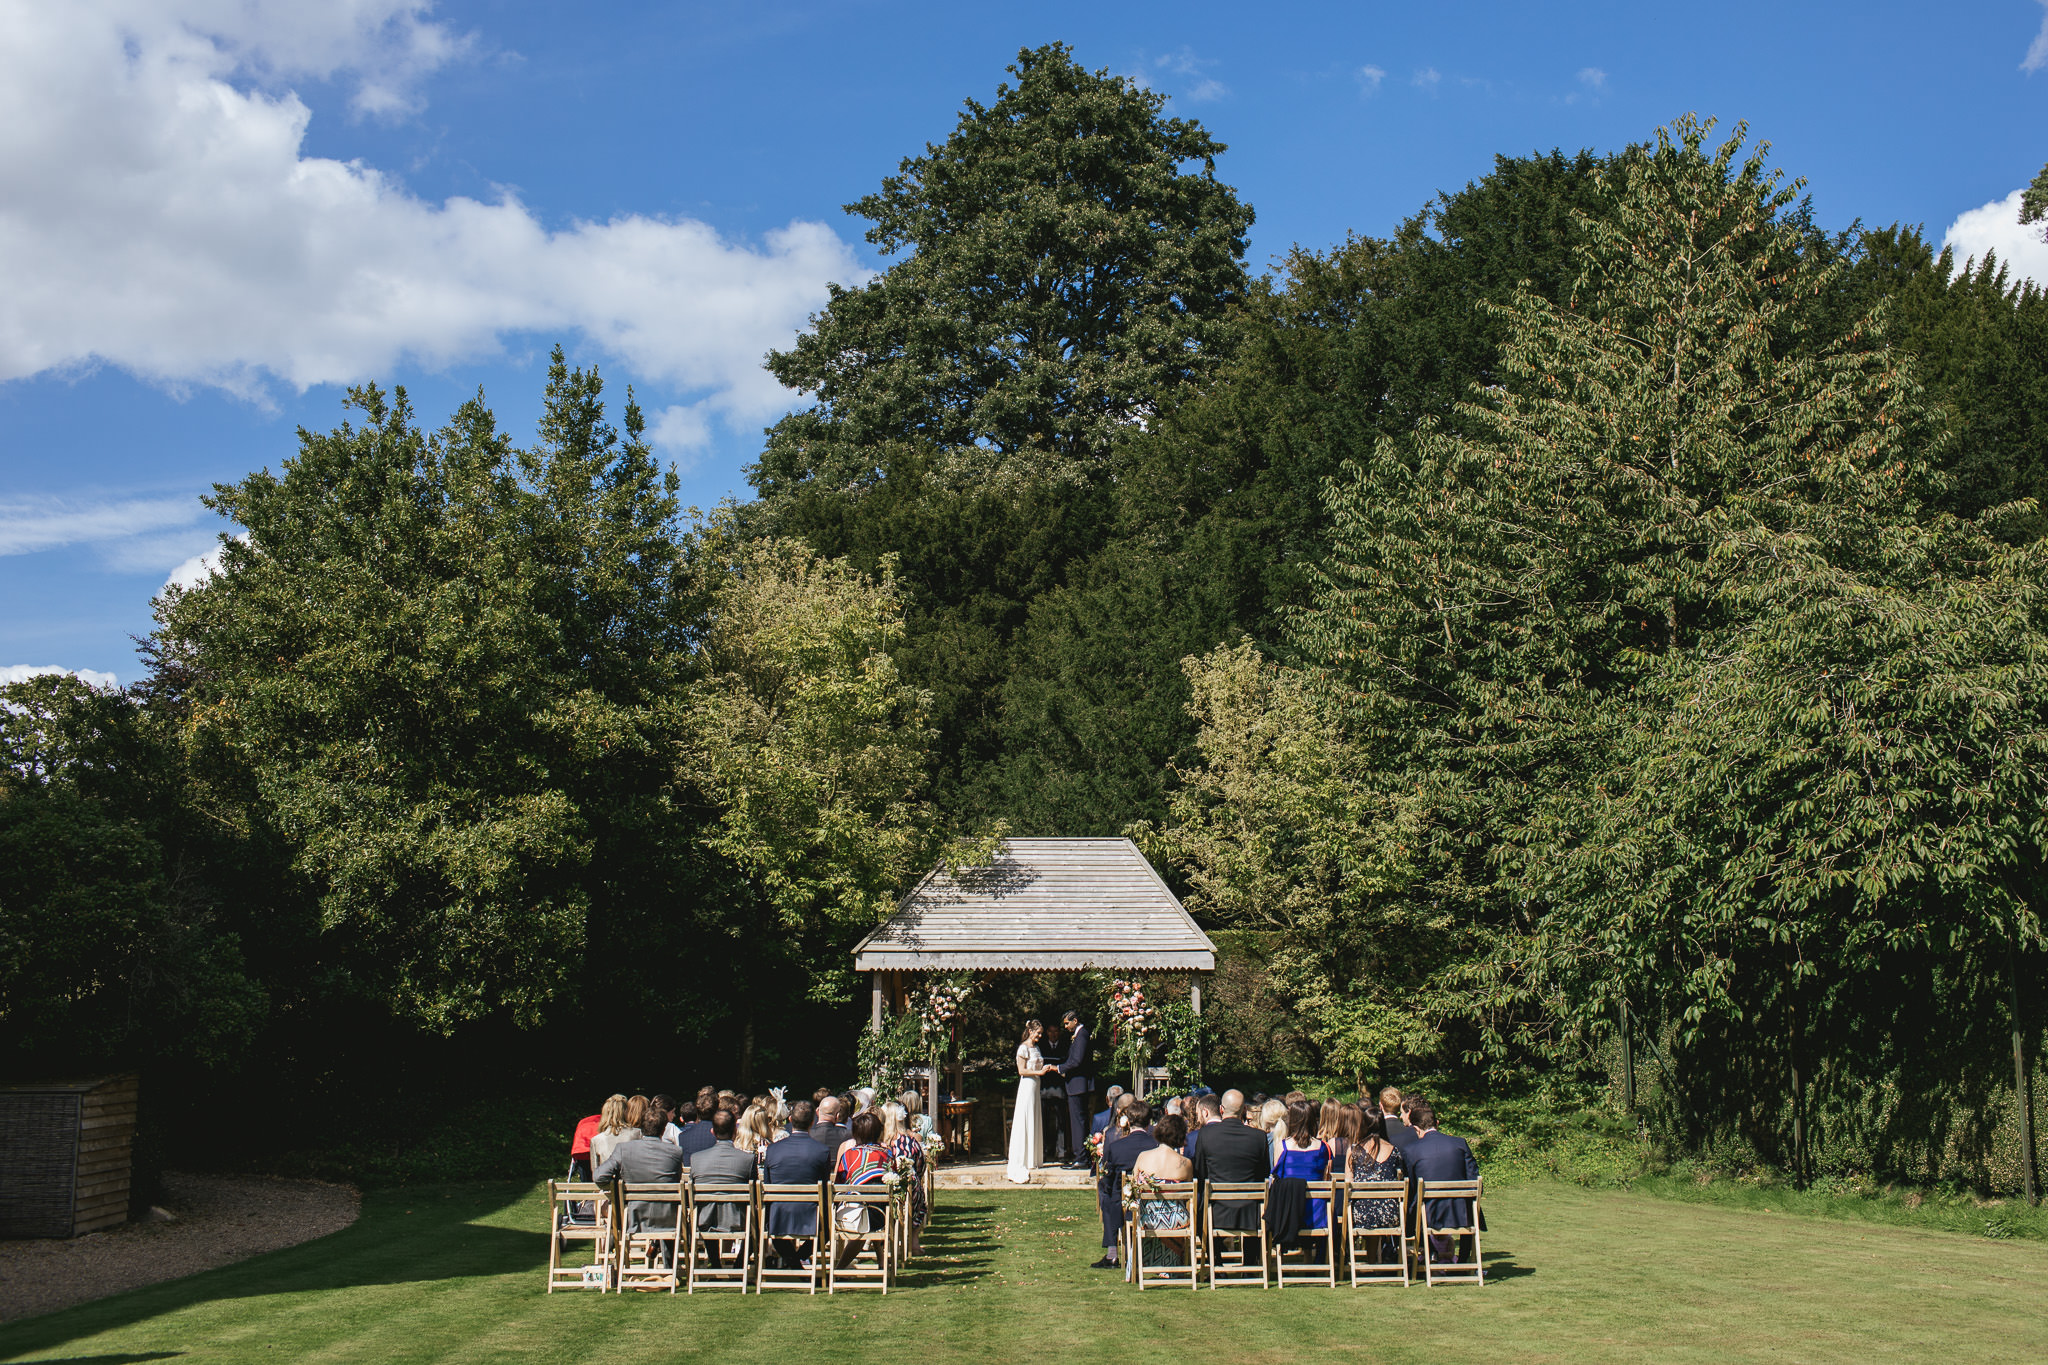 Outdoor wedding at Pennard House, Somerset_beautiful scene of the wedding taking place